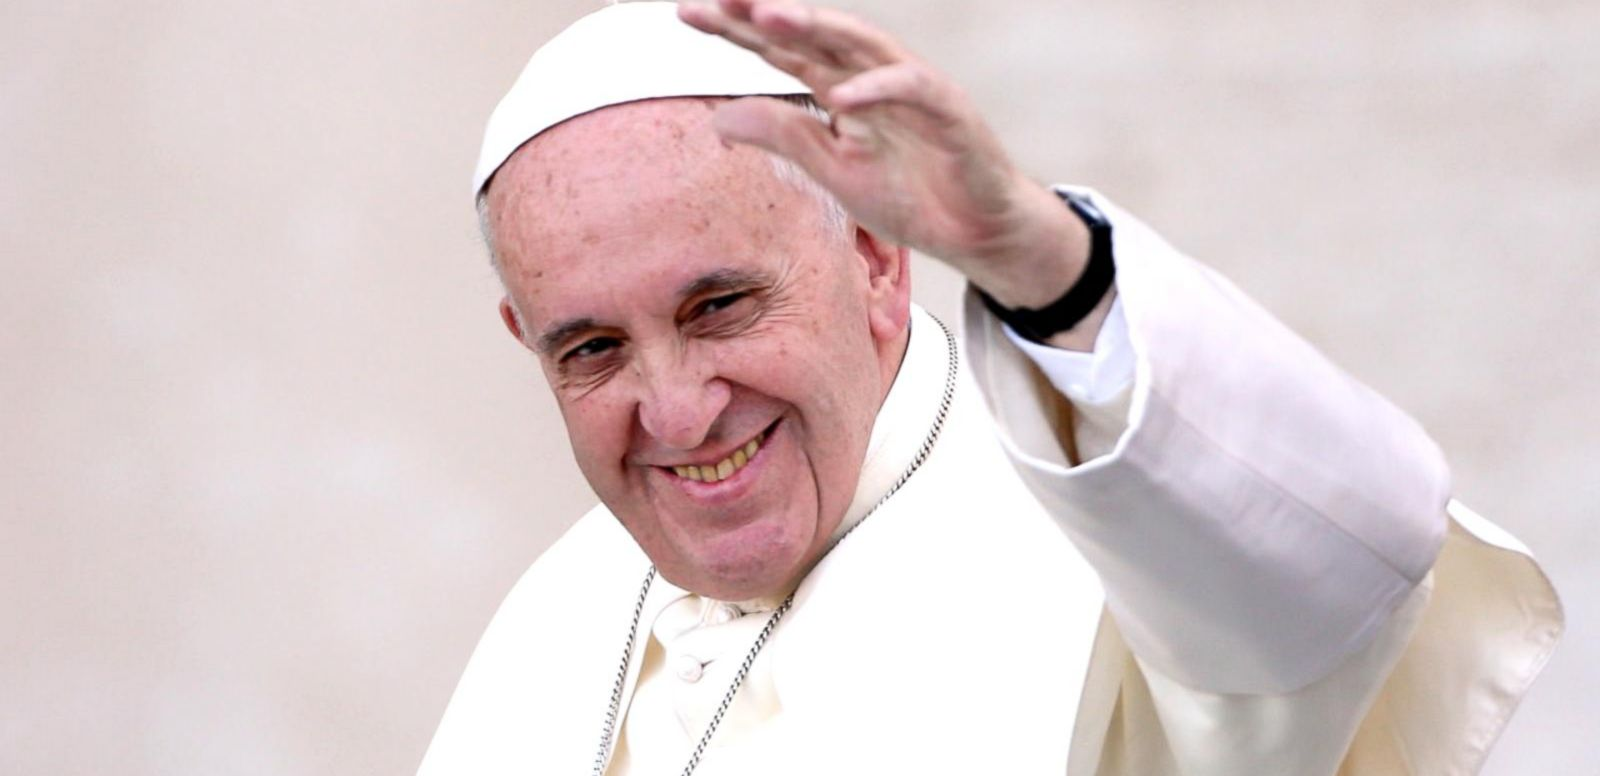 VIDEO: Pope Francis to Meet With President Obama and Address Congress